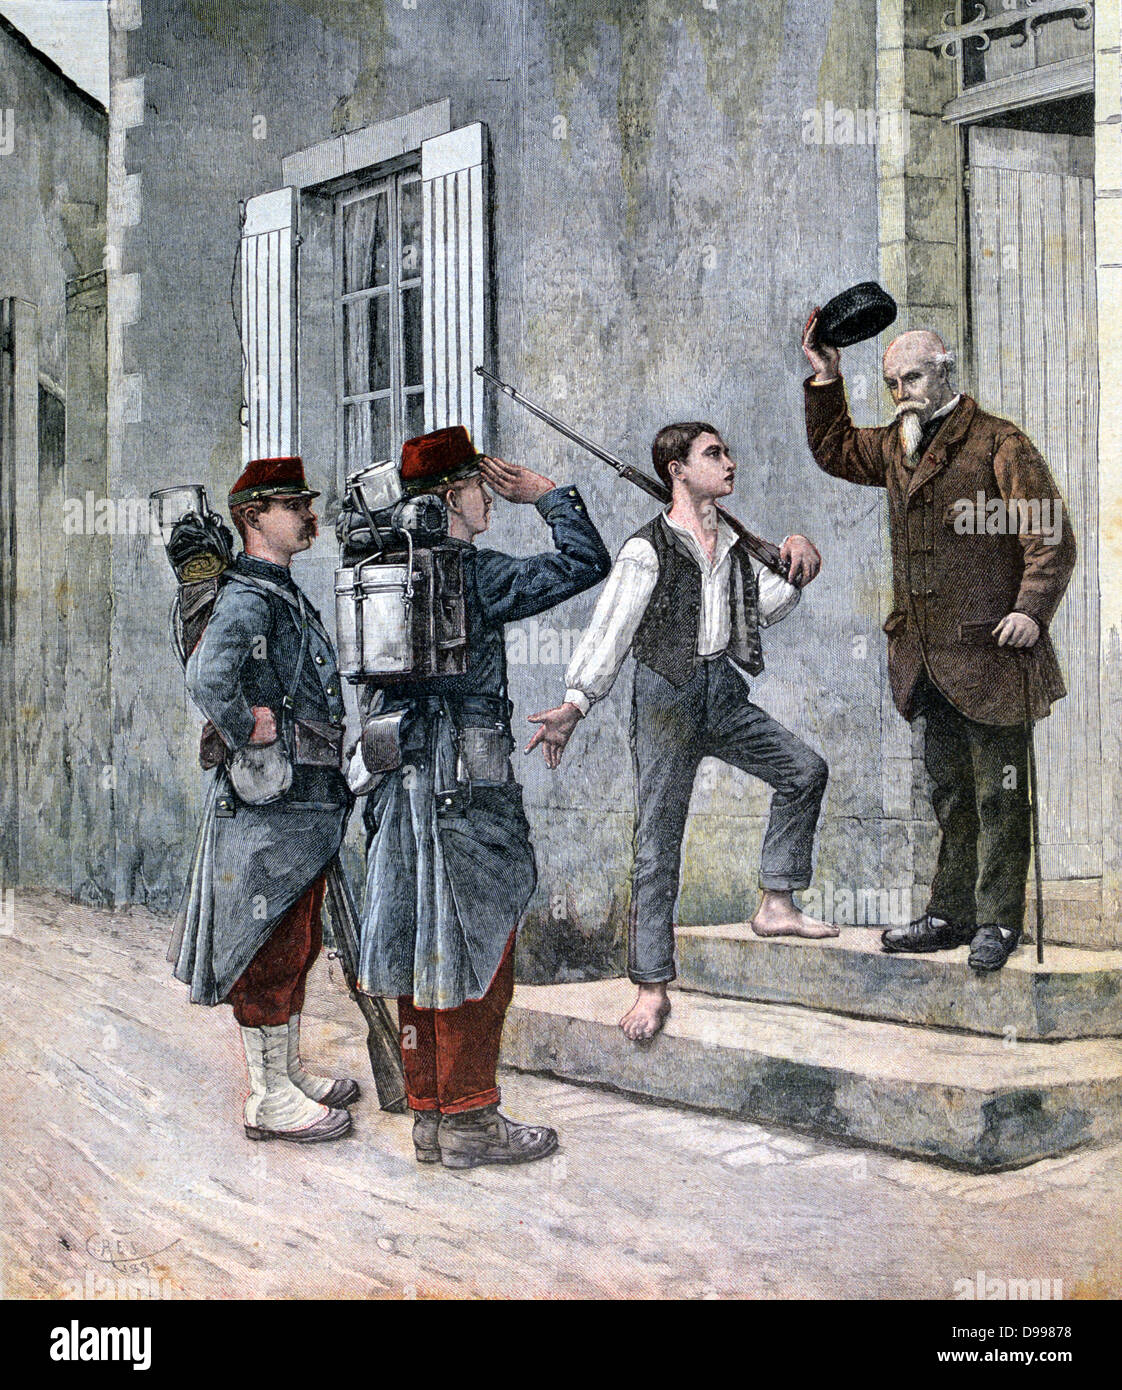 French soldiers arriving at their billet.  From 'Le Petit Journal', Paris, 14 May 1892.  France, Army, Infantry - Stock Image